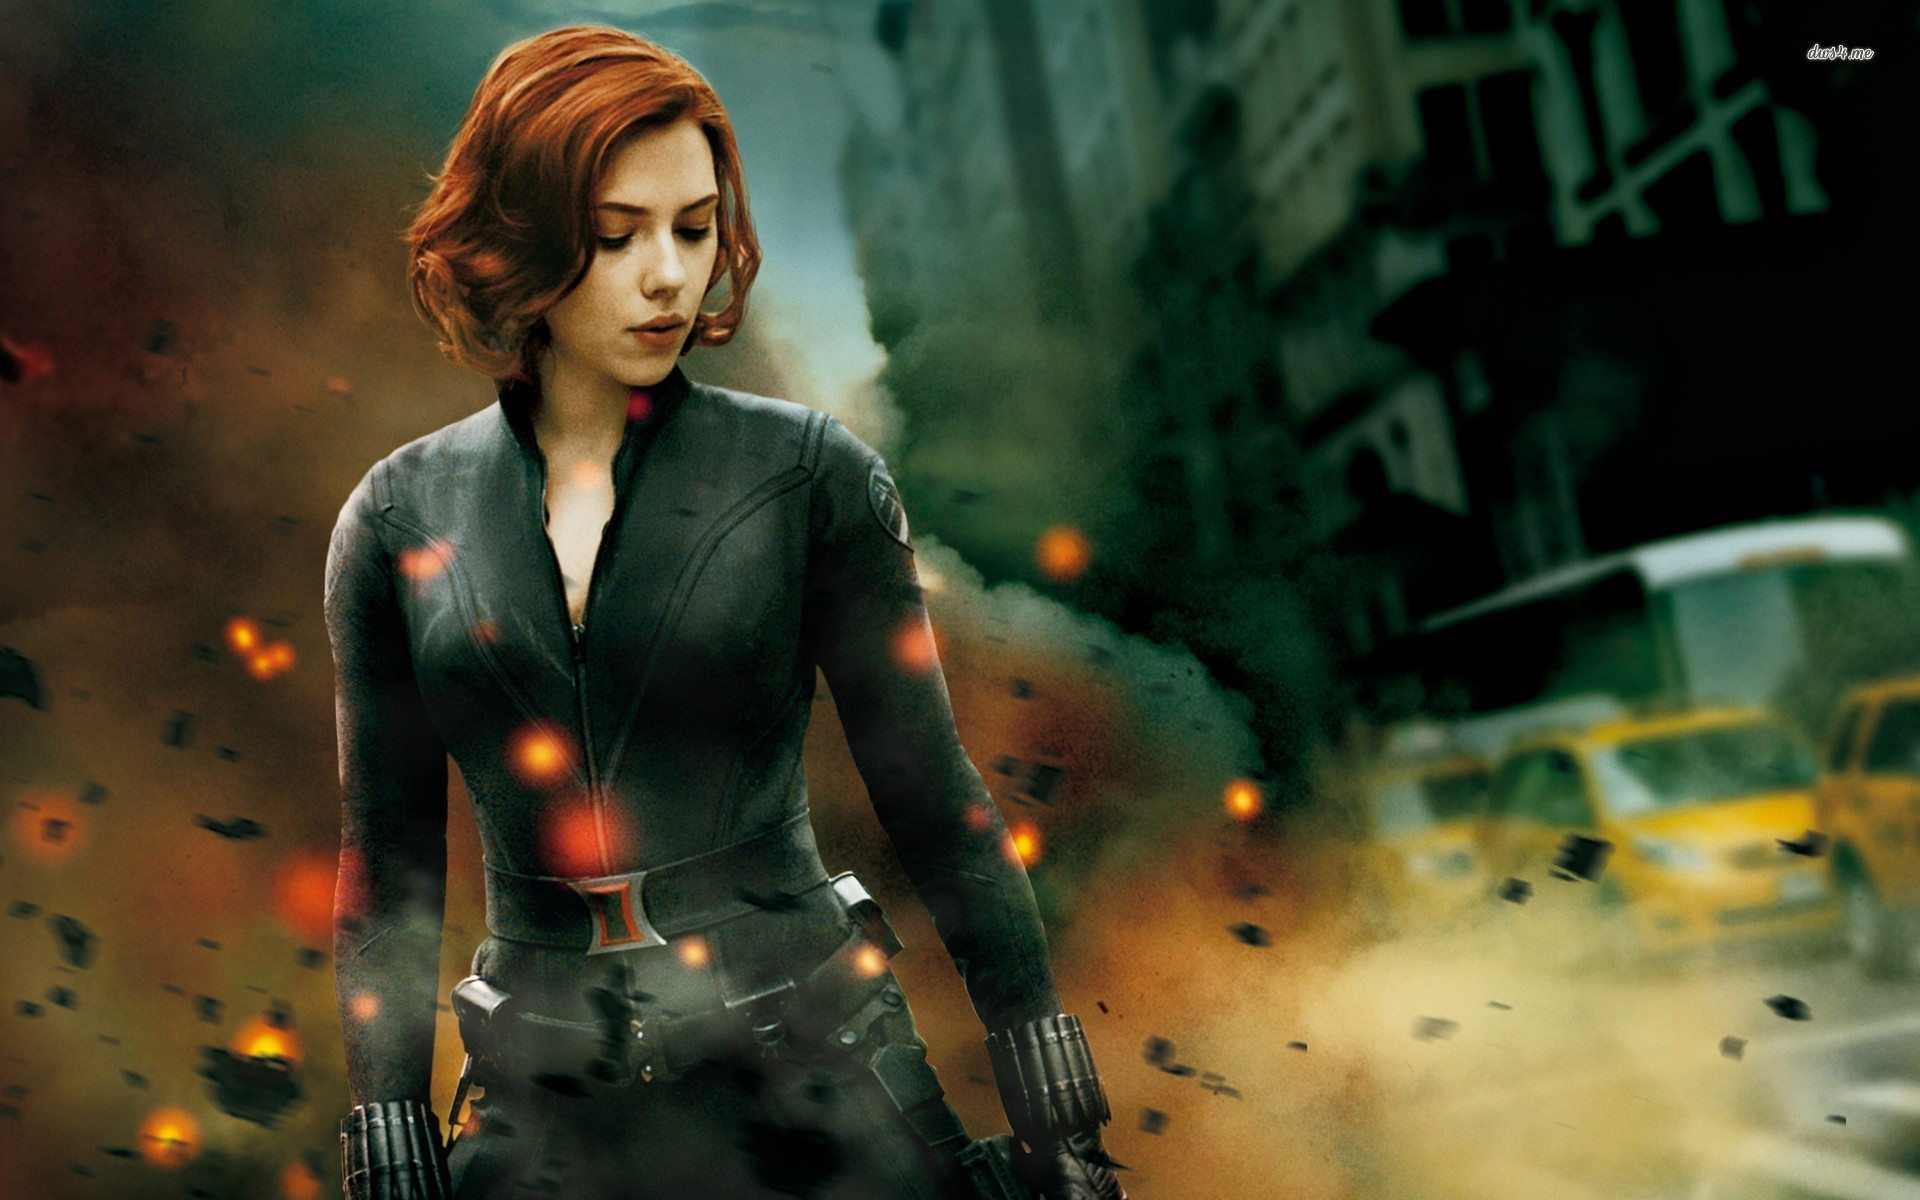 Free Download Black Widow The Avengers Wallpaper 773010 1920x1200 For Your Desktop Mobile Tablet Explore 36 Black Widow Avengers Wallpaper Scarlett Johansson Black Widow Wallpaper Black Widow Wallpaper Black Widow Spider Wallpaper